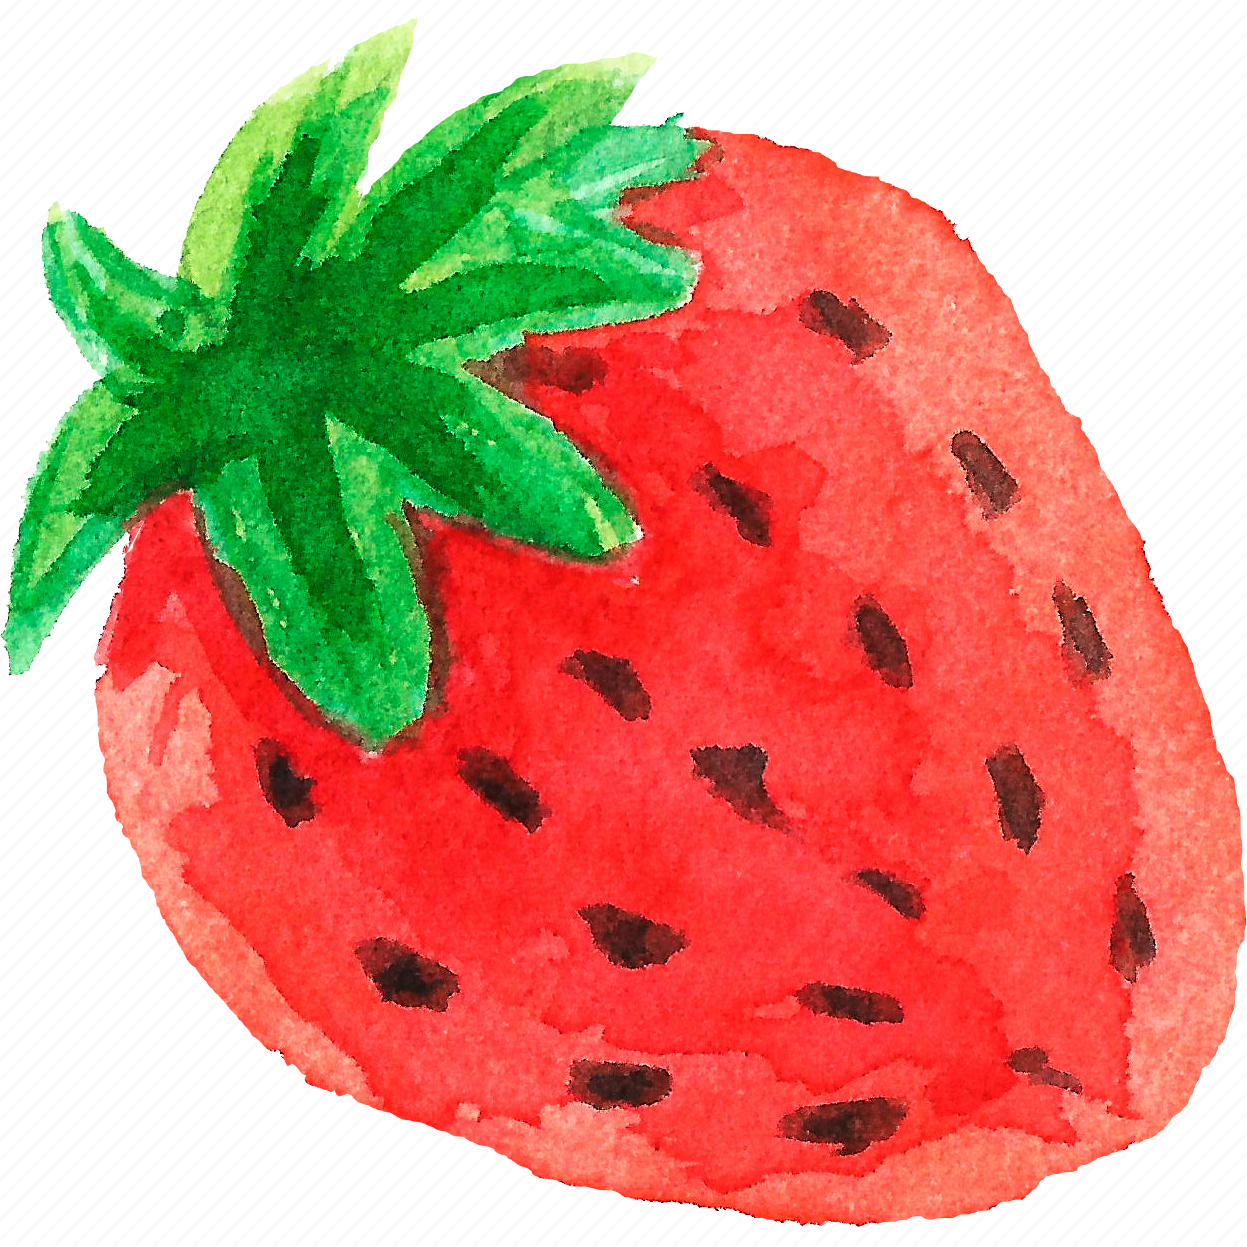 cuisine, food, fruit, fruits, strawberry, watercolor, watercolors icon